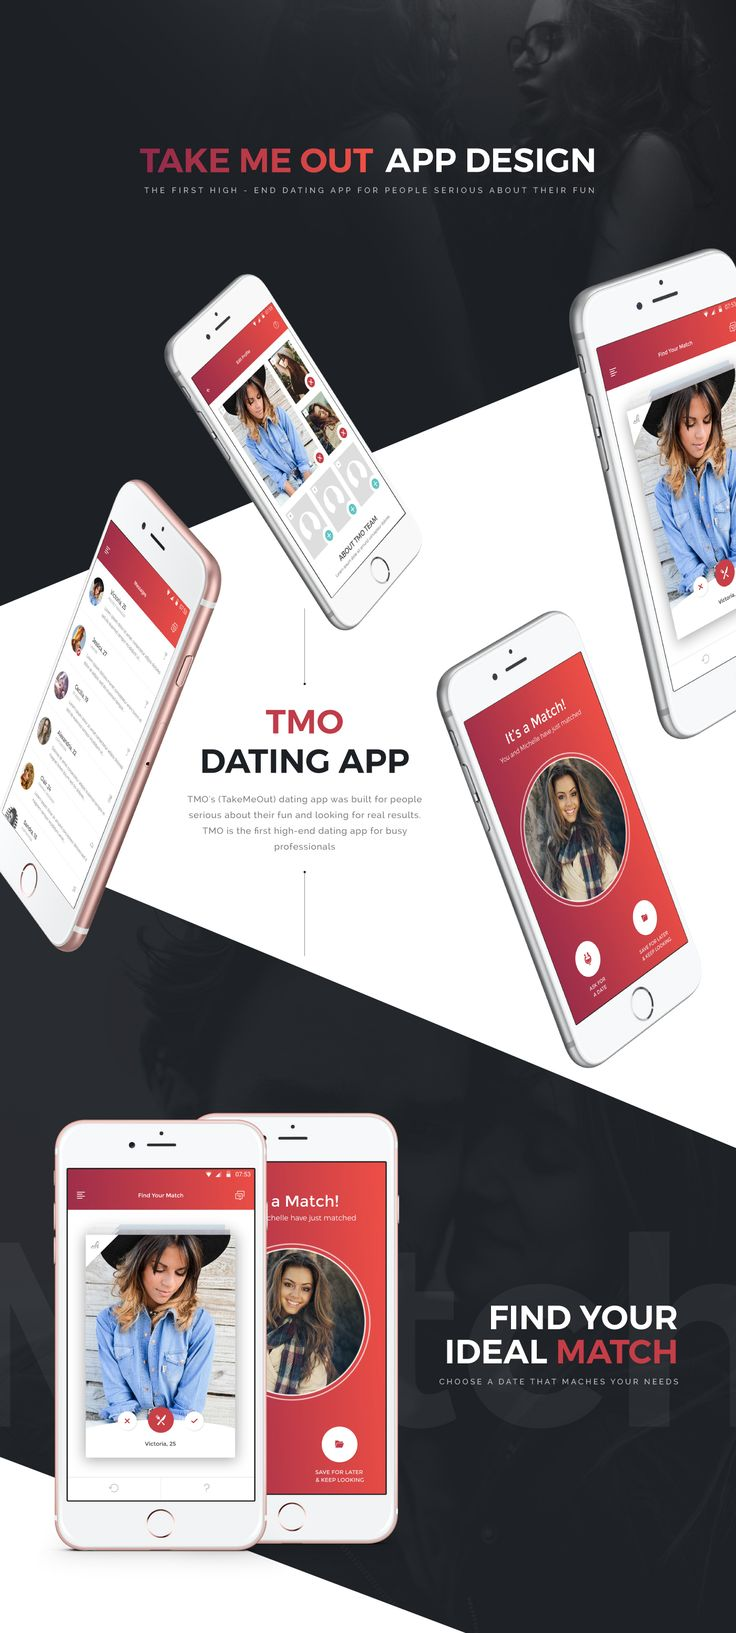 CLIENT. TMO's (TakeMeOut) dating app was built for people serious about their fun and looking for real results. TMO is the first high-end dating app for busy professionals. PROBLEM. Client can generate traffic to their app page on Play Store, but once vis…